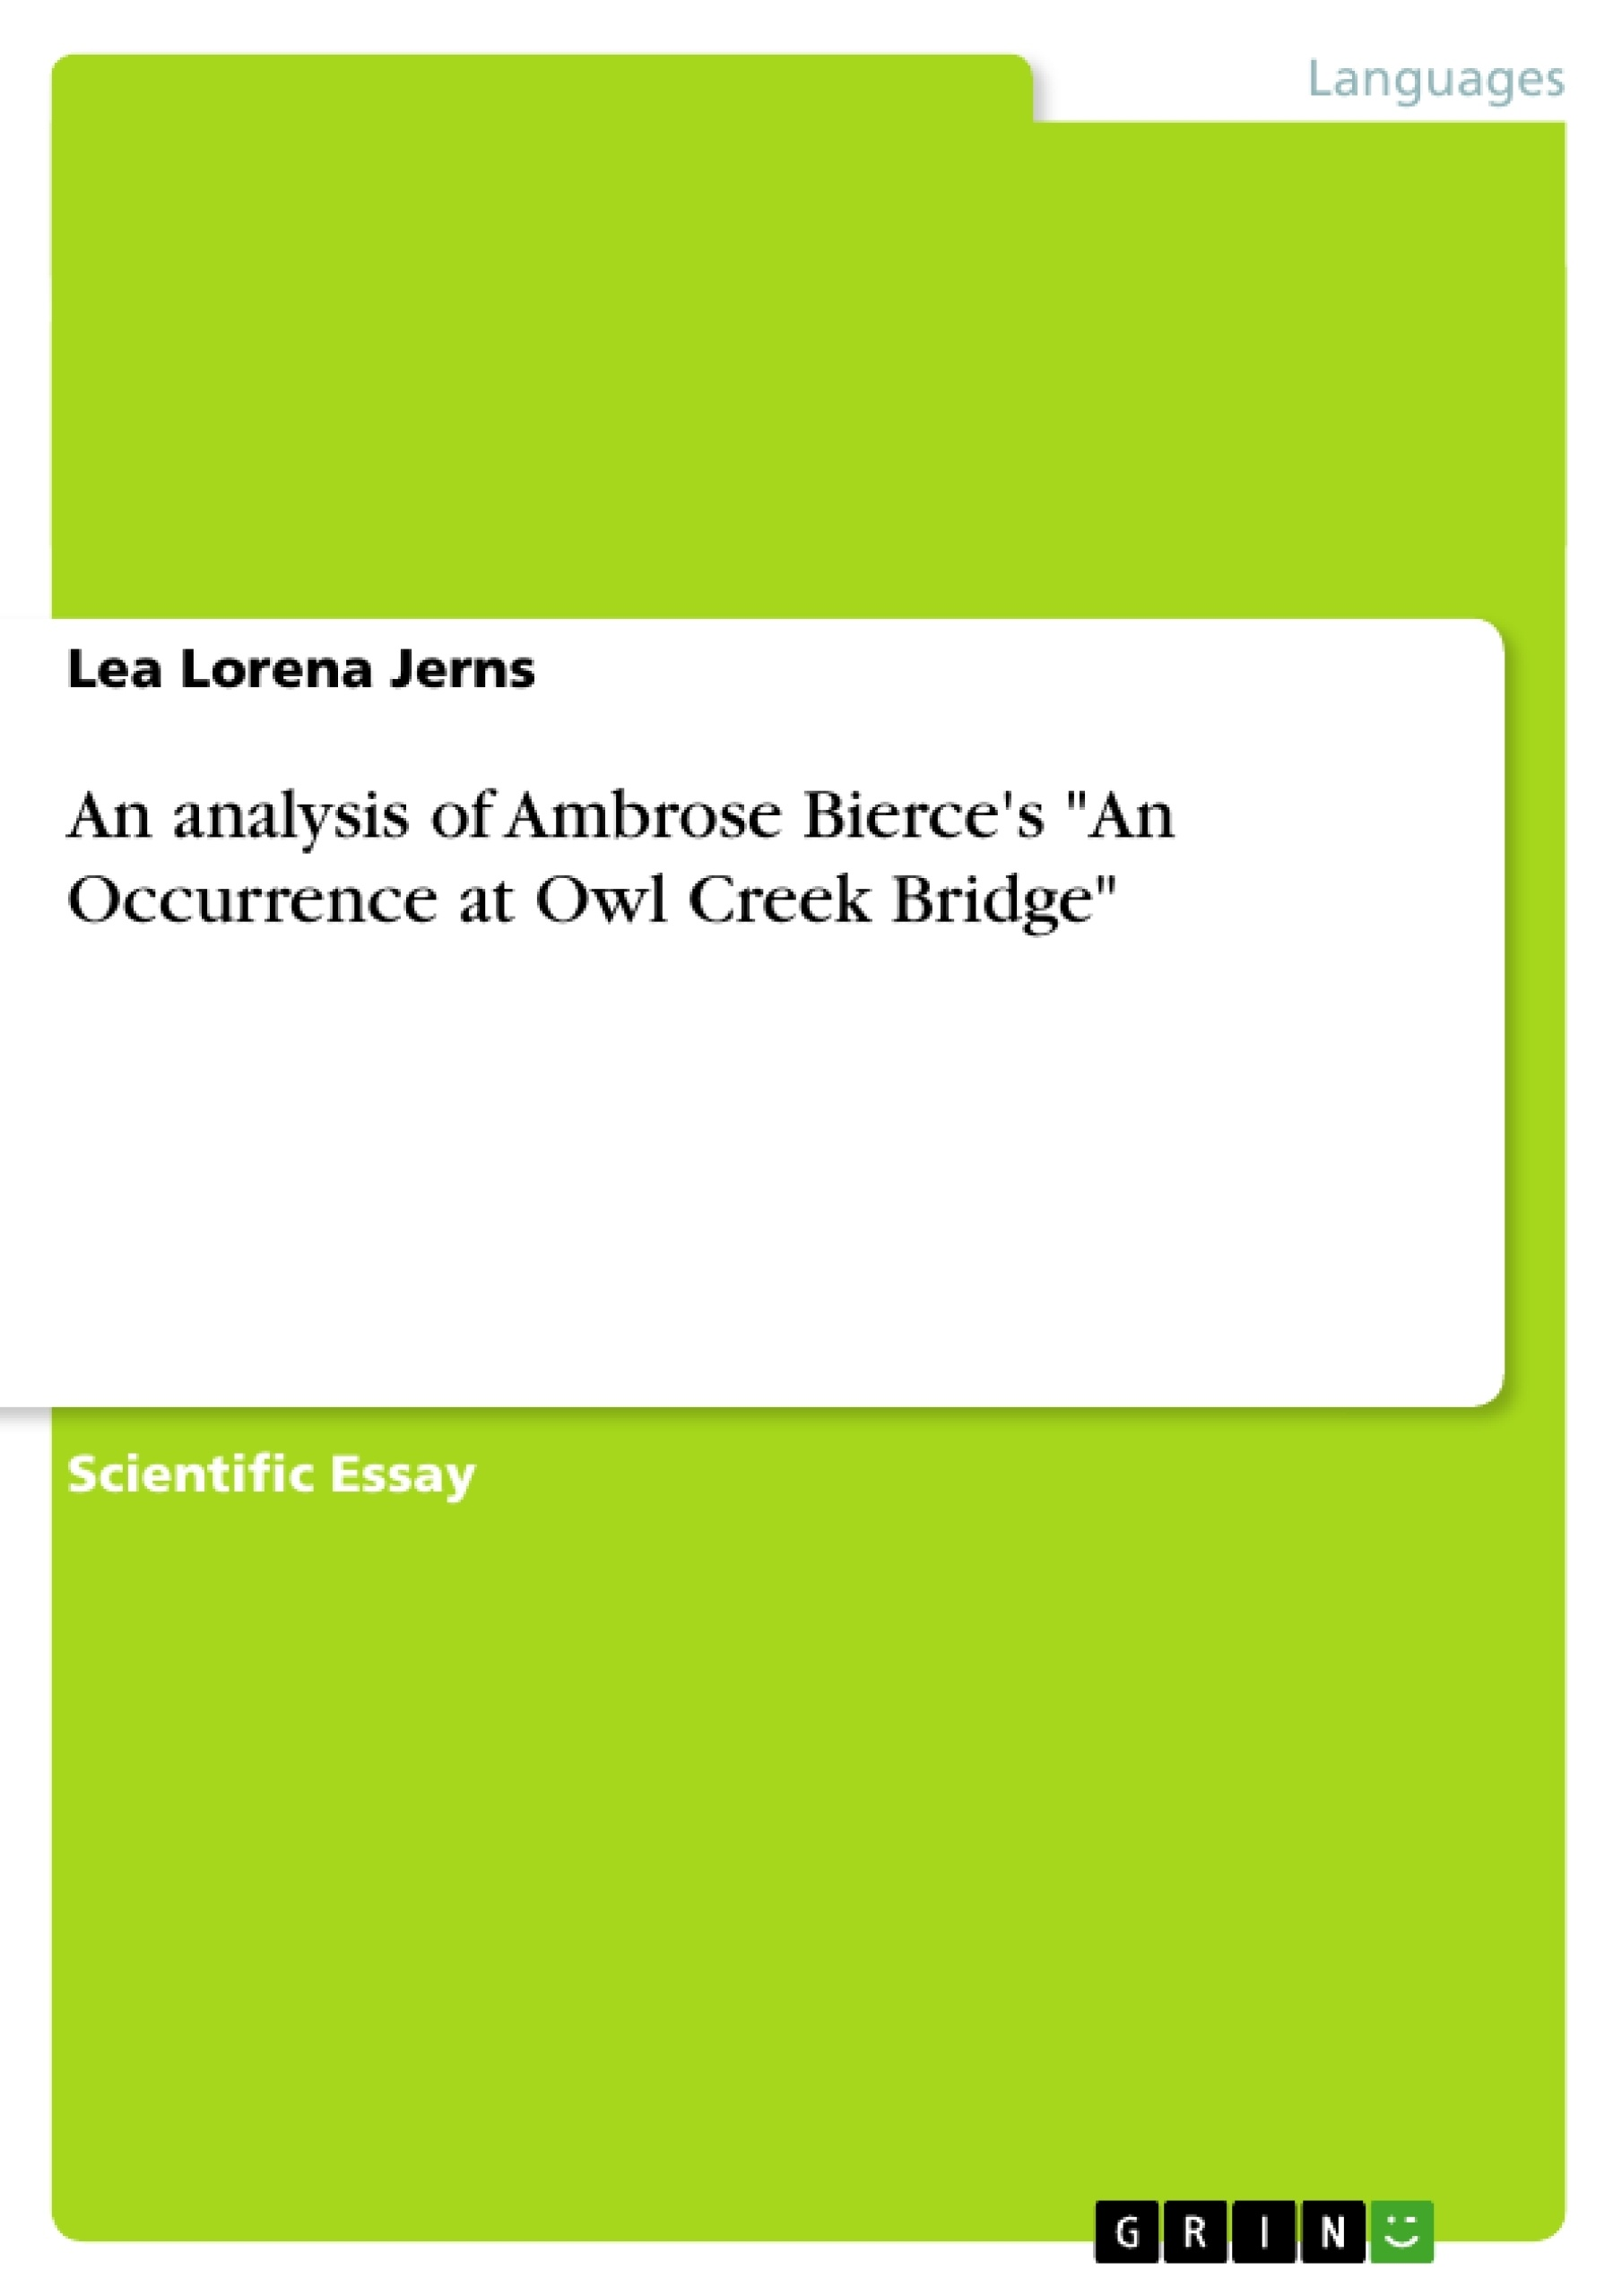 an analysis of ambrose bierce s an occurrence at owl creek bridge earn money and win an iphone 7